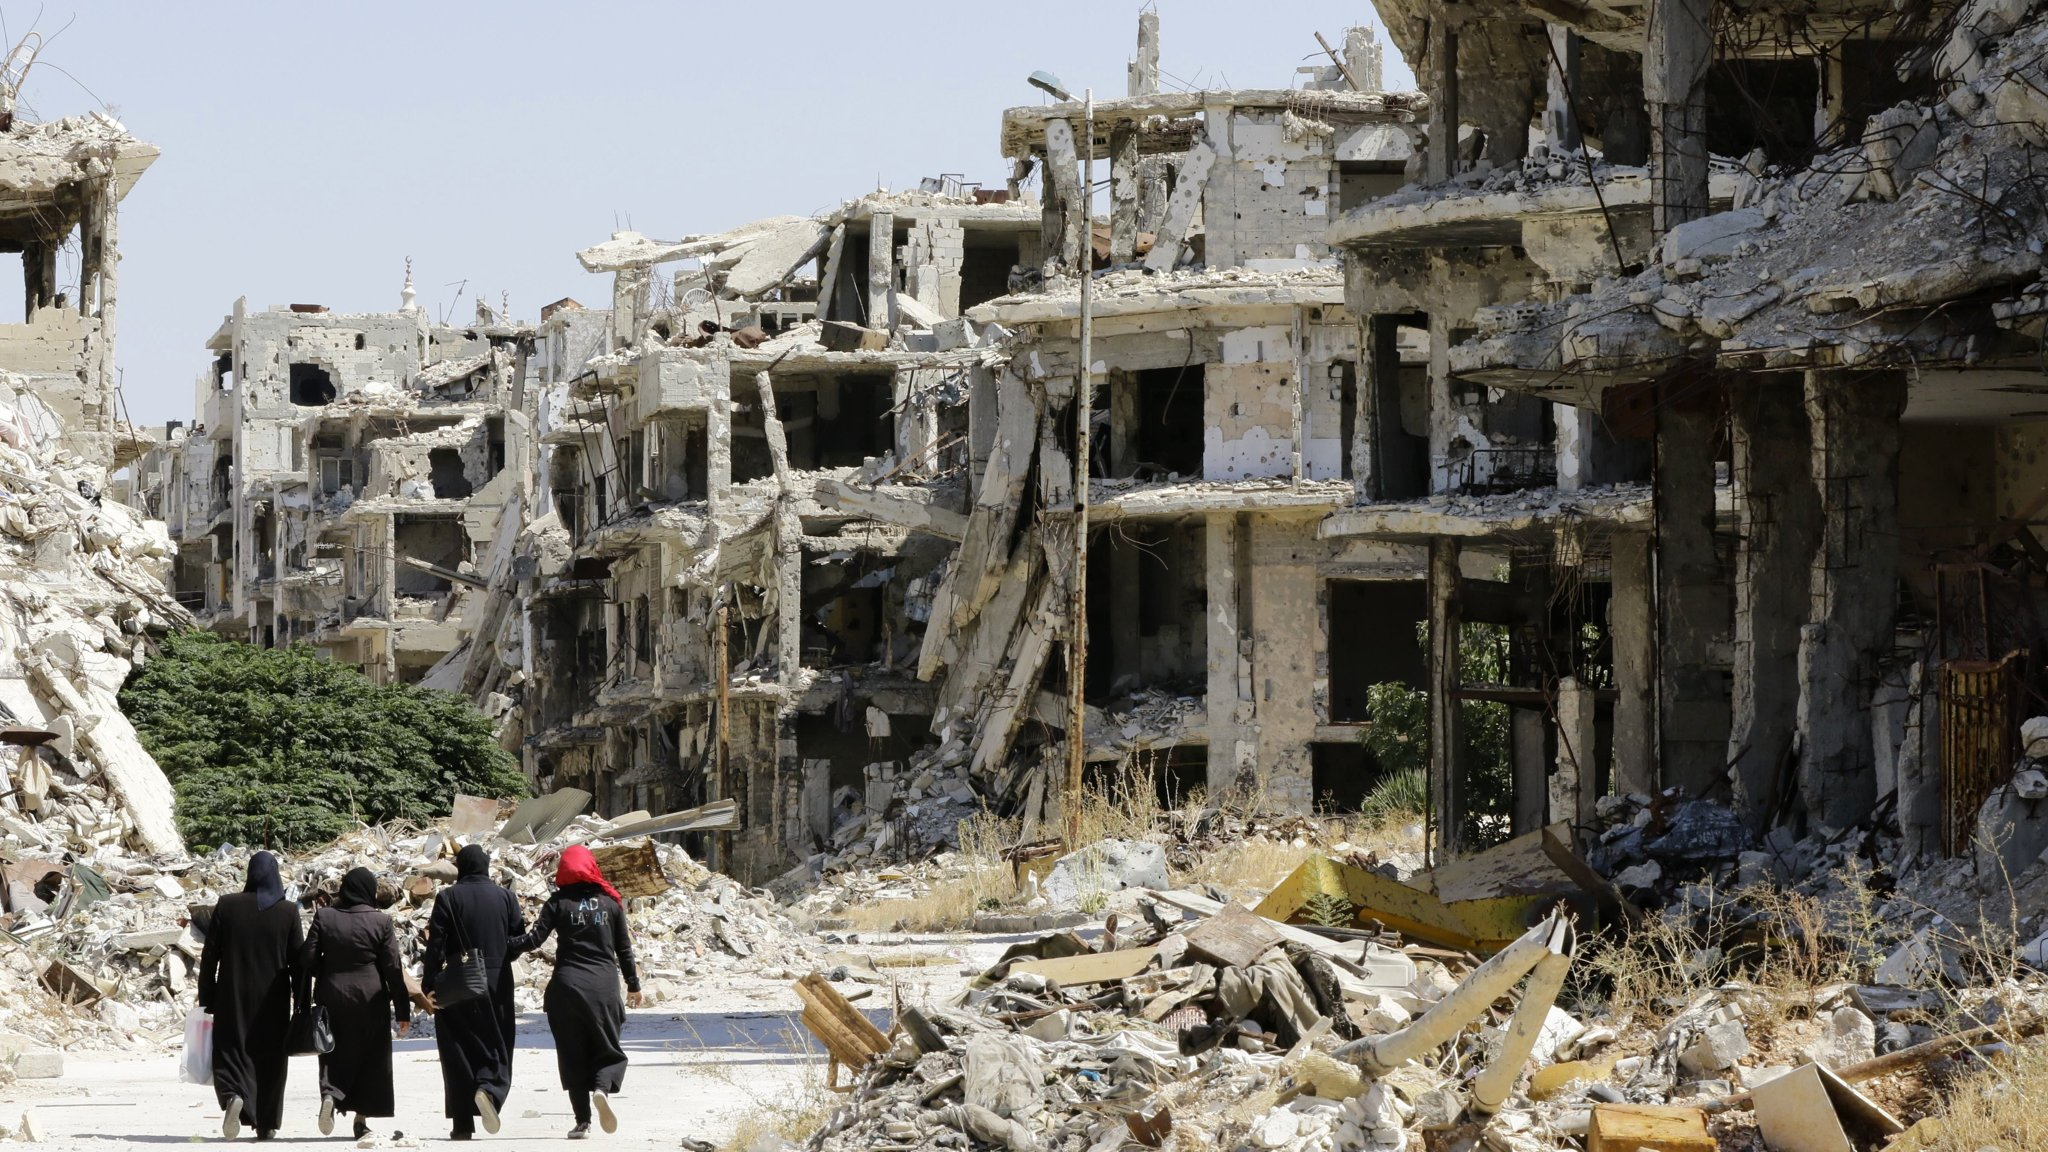 Russia presses EU to pay up for rebuilding Syria